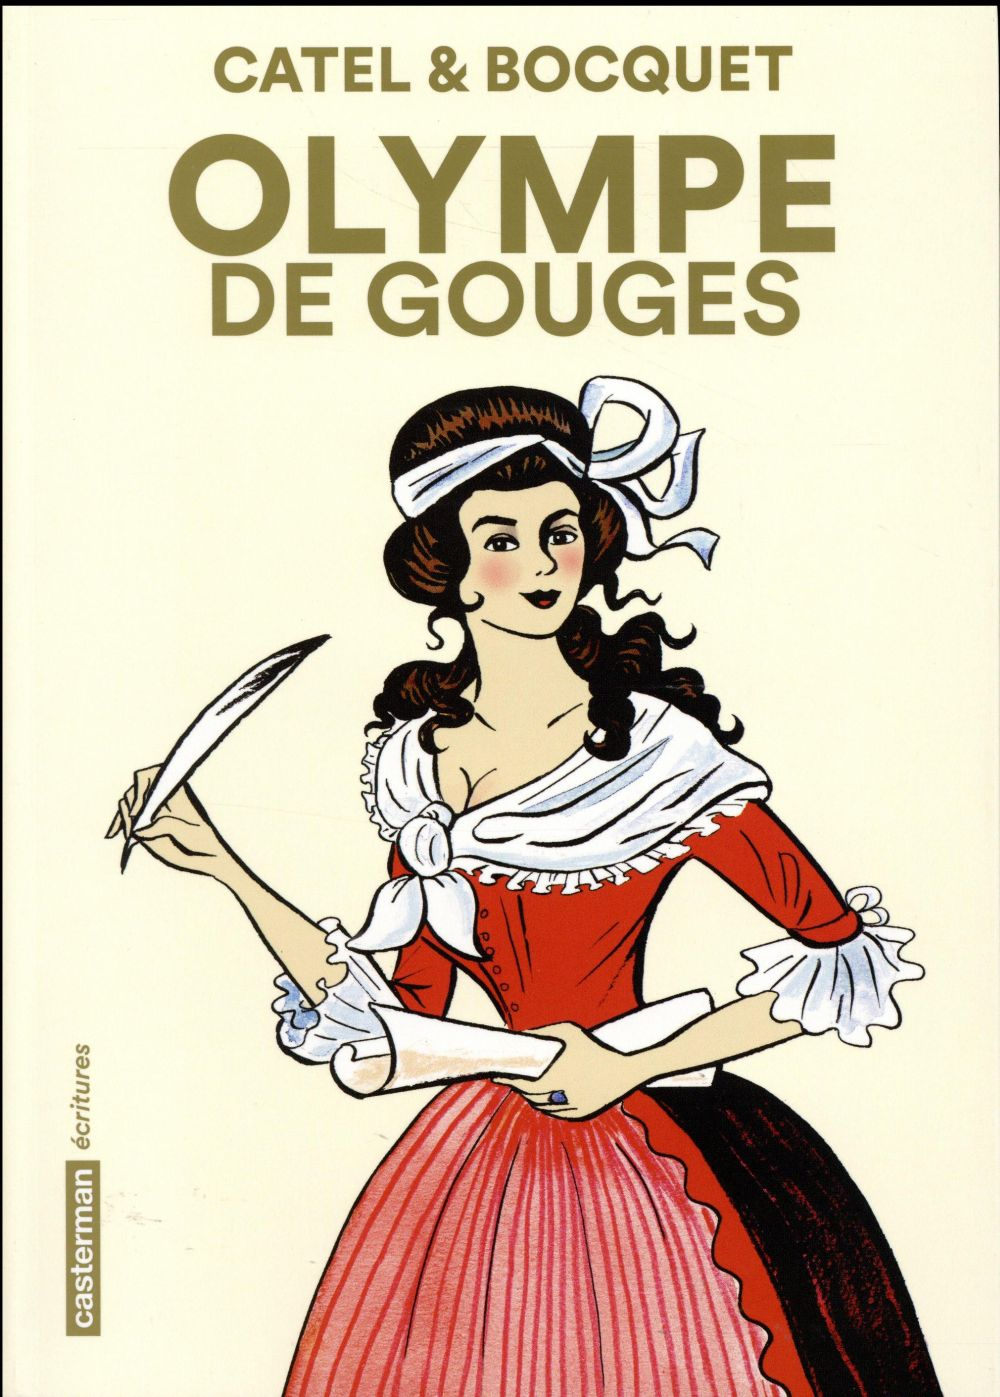 OLYMPE DE GOUGES Catel